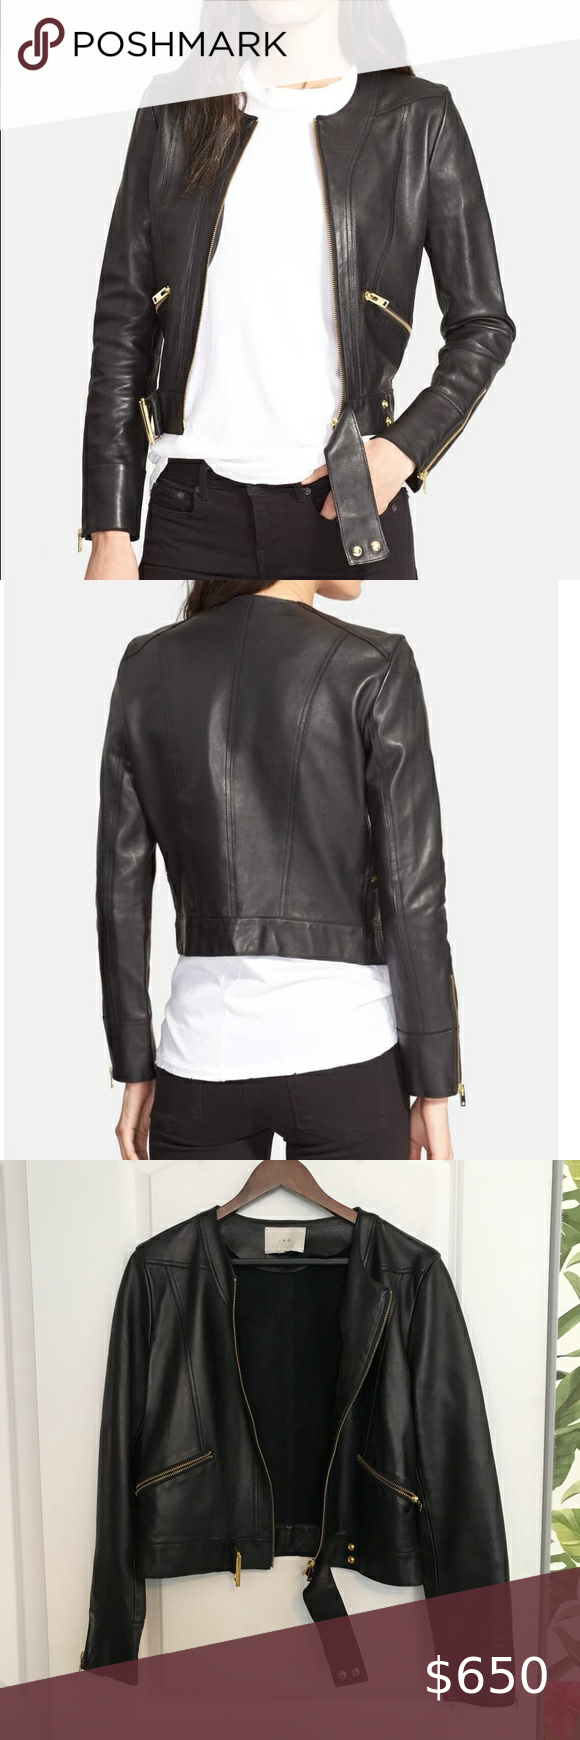 Iro Broome Collarless Belted Leather Jacket Black In 2020 Leather Jacket Black Leather Jacket Collarless [ 1740 x 580 Pixel ]